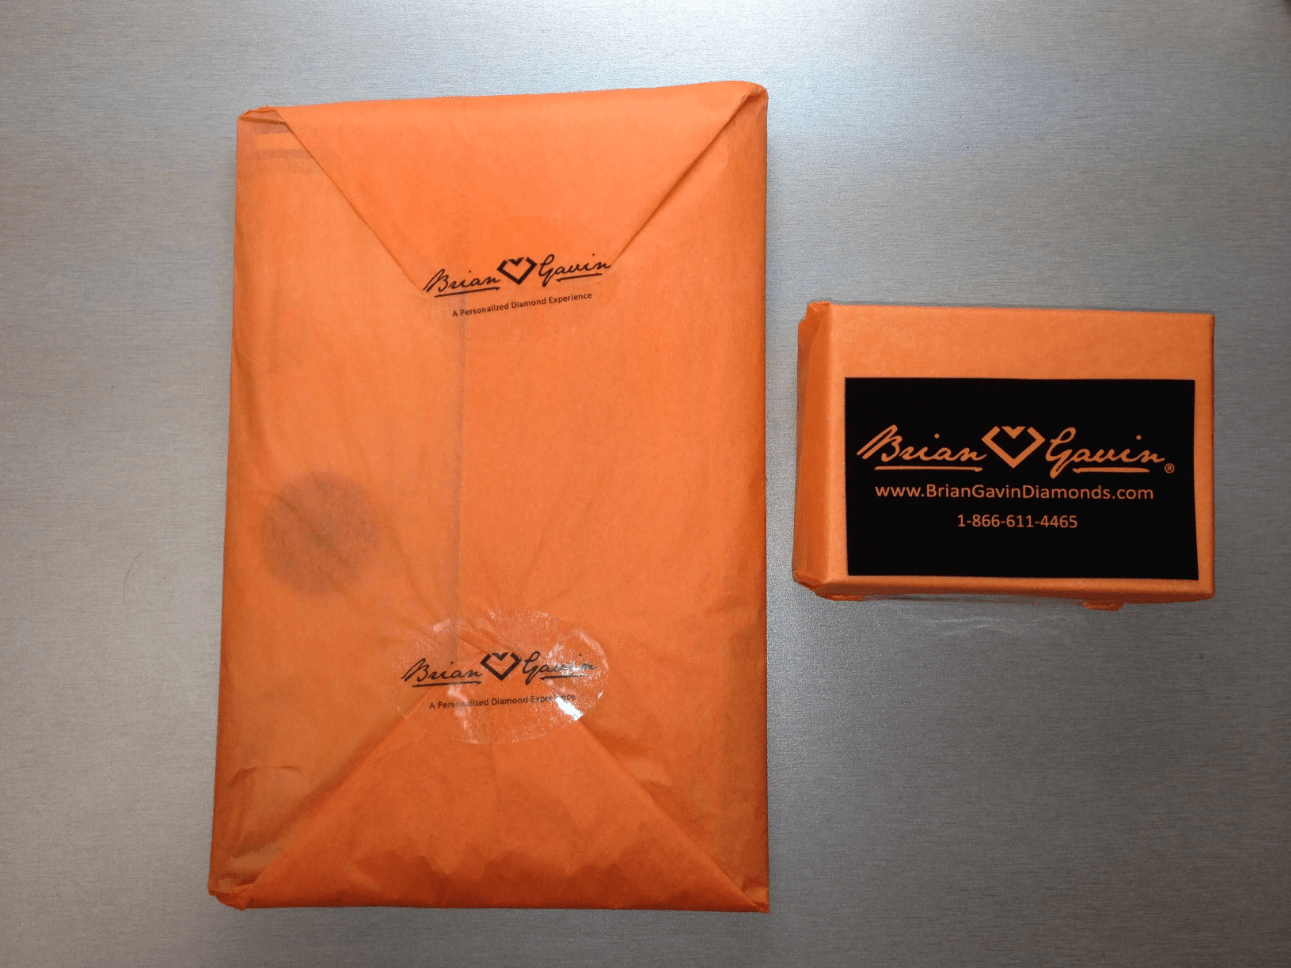 AGS Certificate and Ring Box in Packaging by Brian Gavin Diamonds